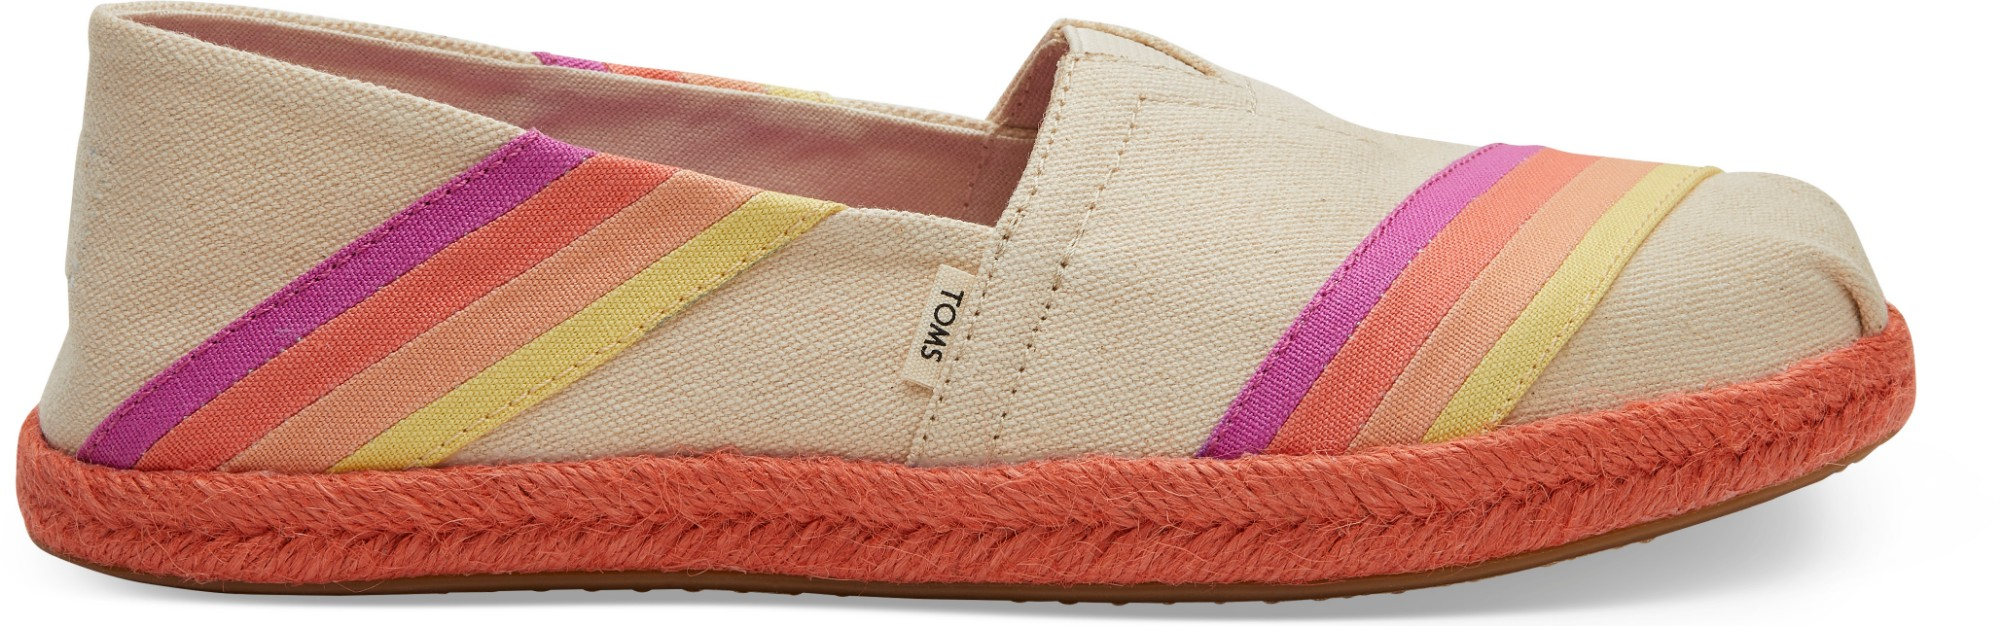 TOMS Canvas Multi Color Sunset Women's Alpargata Natural 39